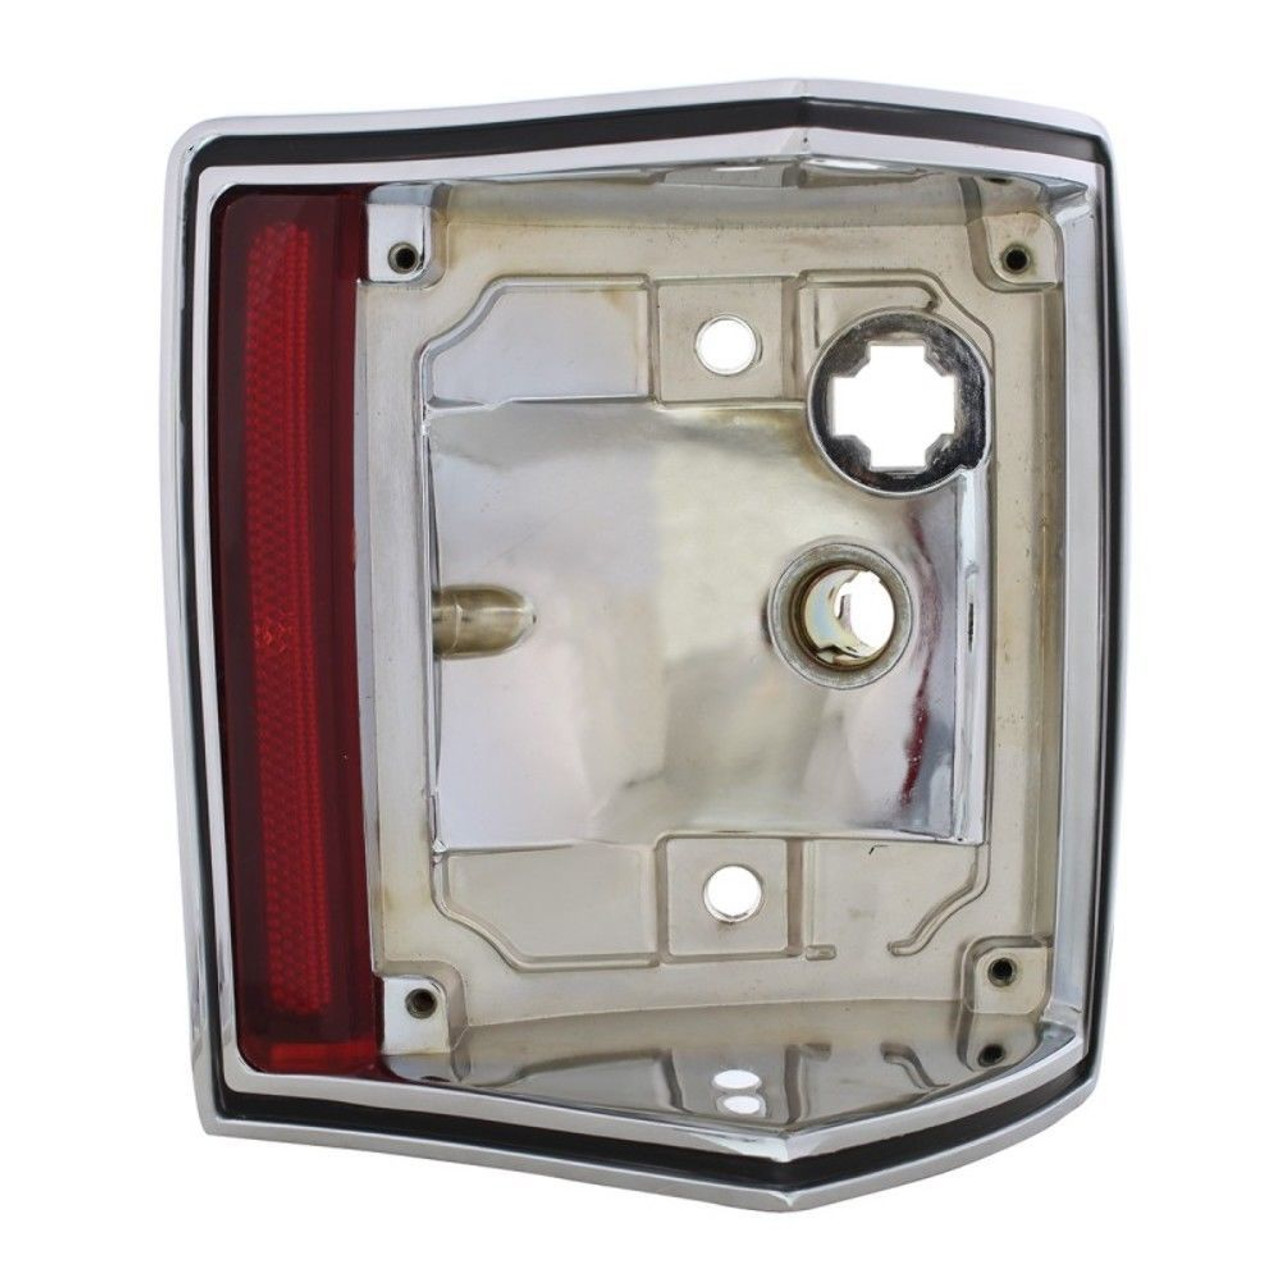 1970 El Camino Led Tail Lights 1970 72 El Camino Station Wagon Chrome Tail Light Housing Right Passenger